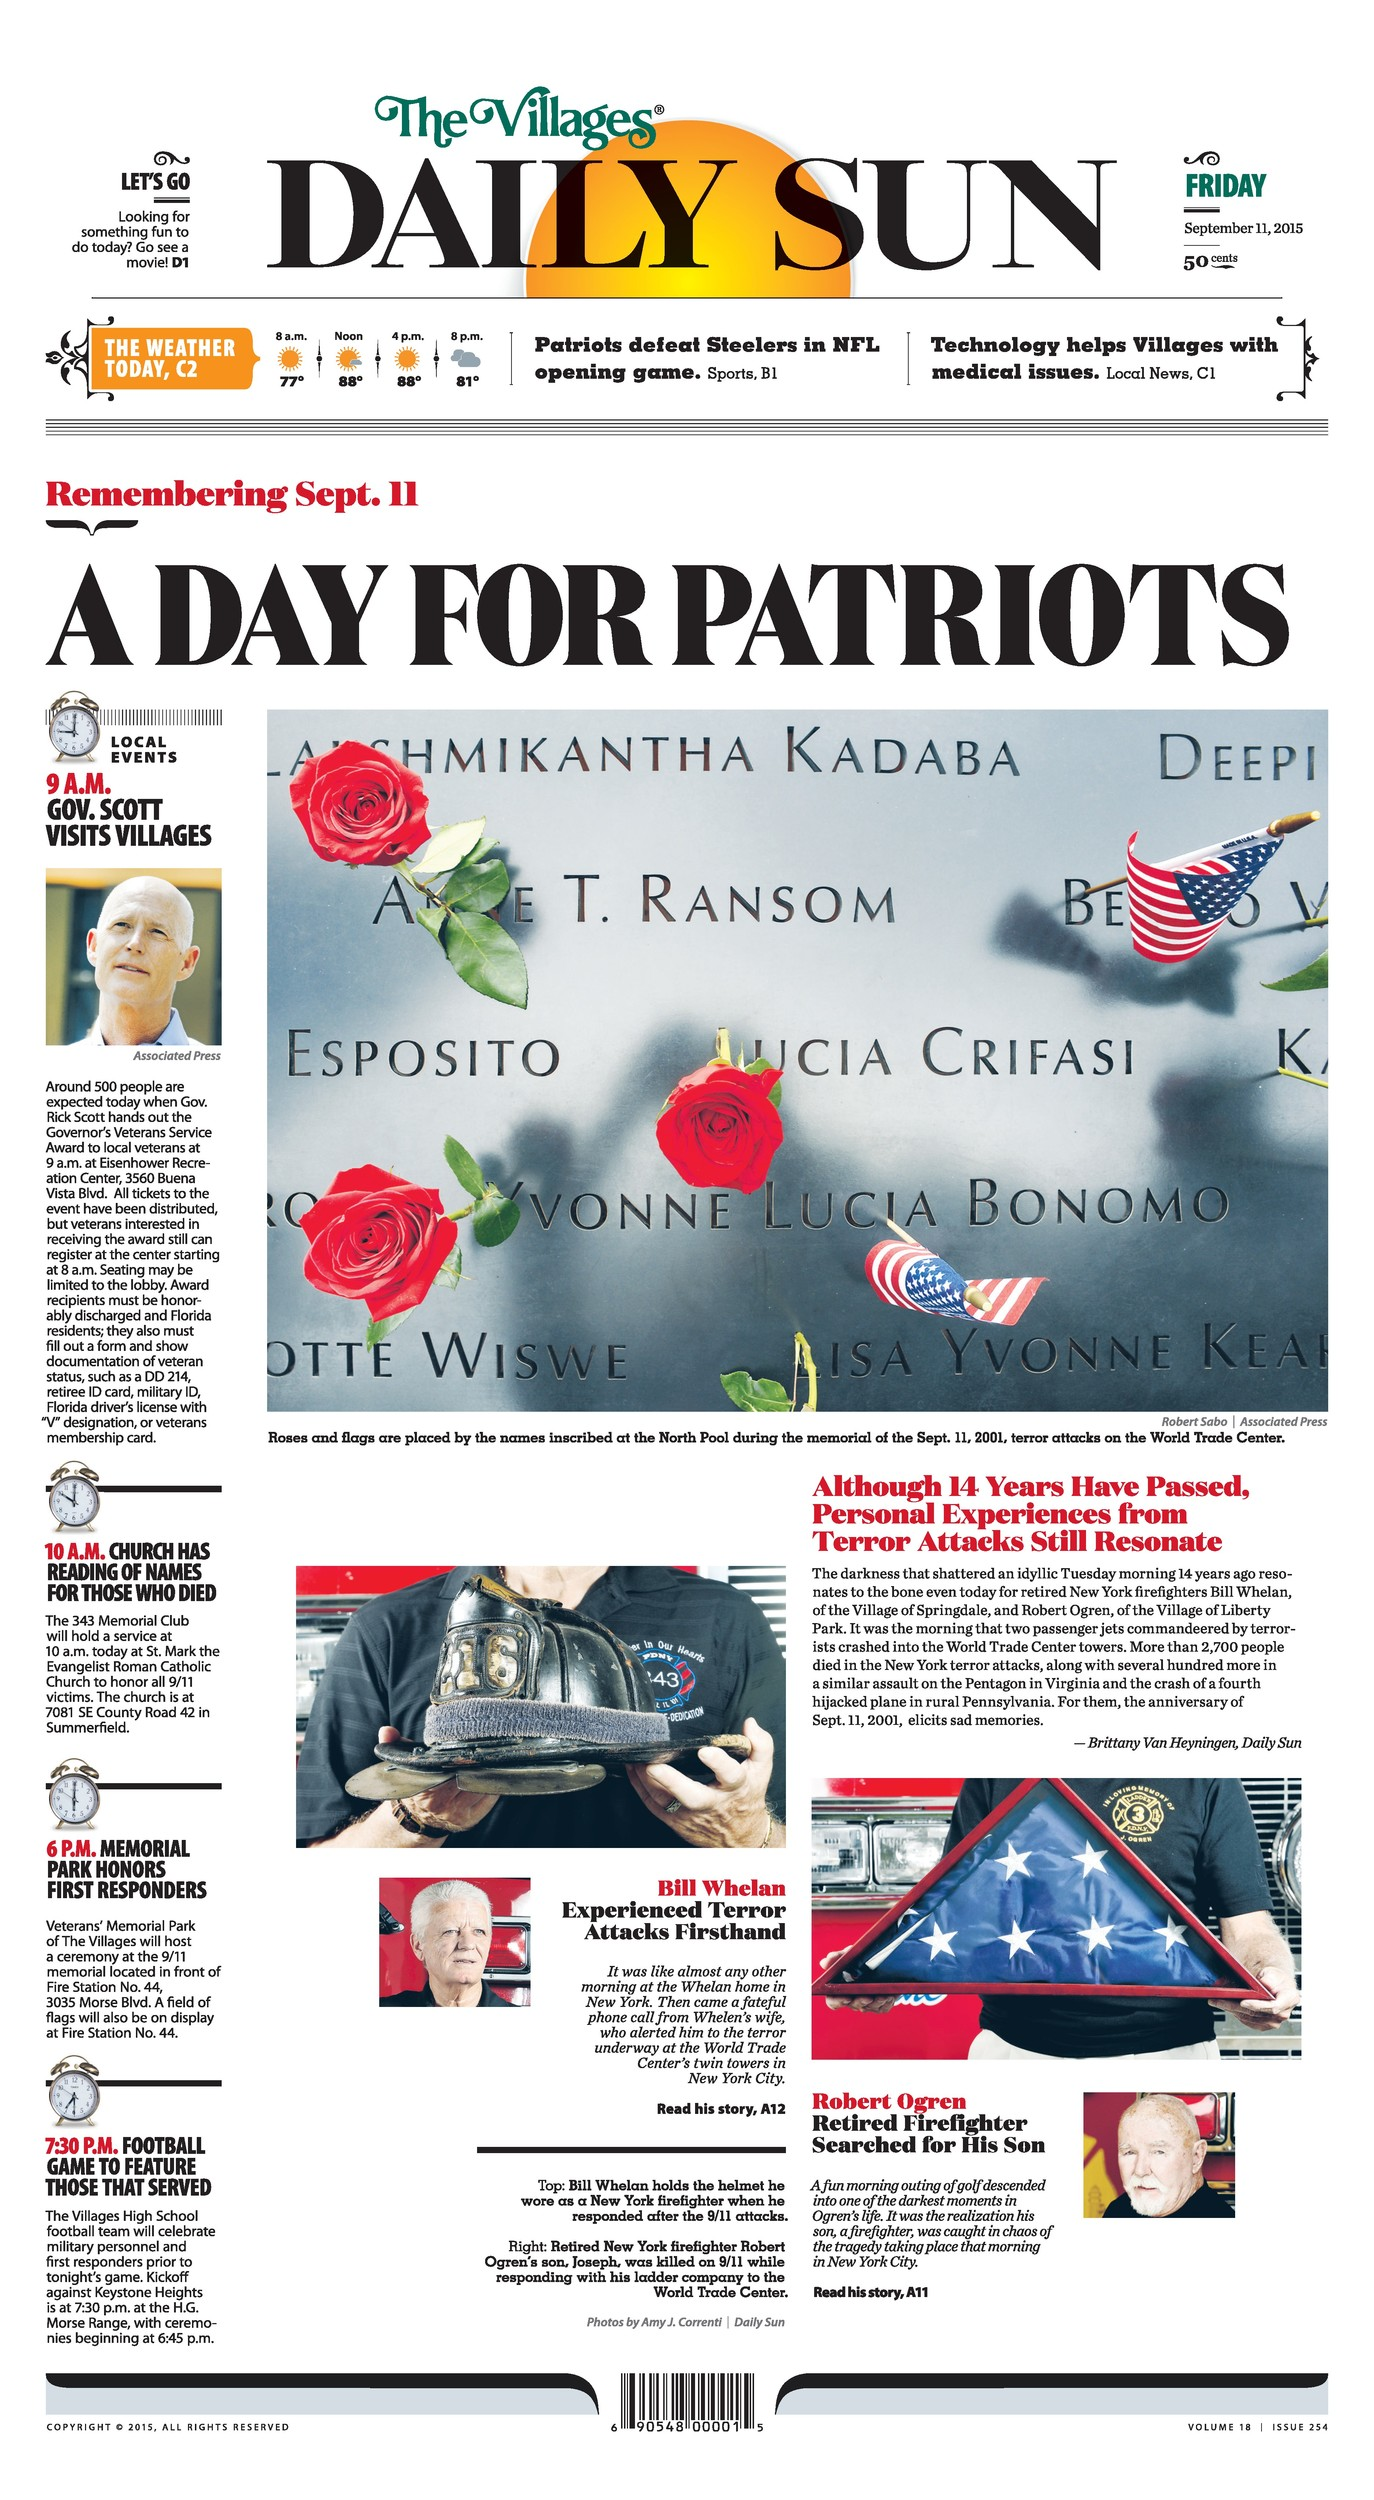 "The Villages (Fla.) Daily Sun's ""A Day for Patriots"" was chosen for first place in Picture Use."